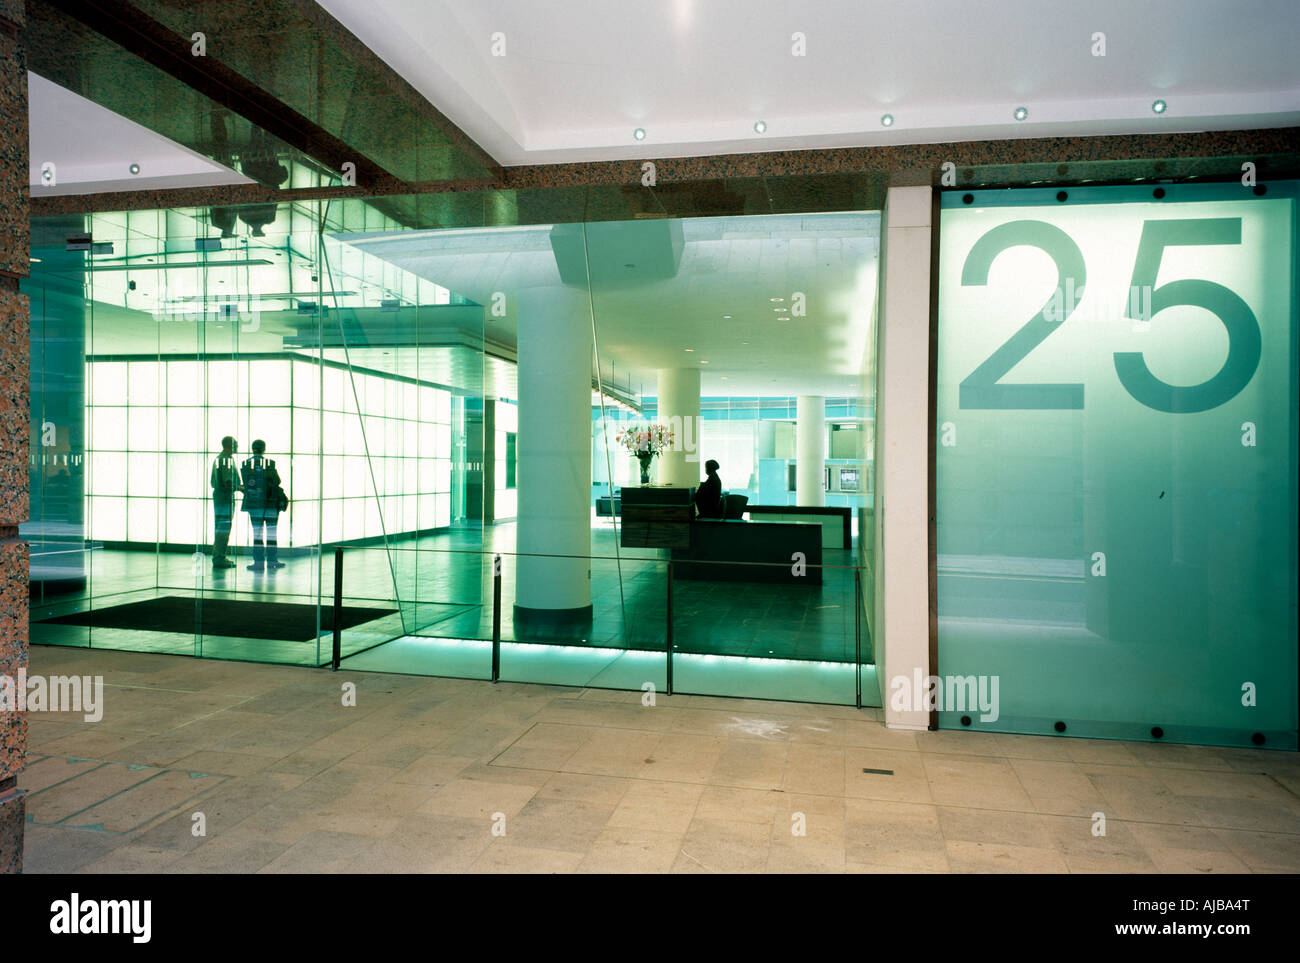 glass exterior modern office. exterior with glass at 25 copthall avenue london ec2 england mhxzsm modern office architecture building design